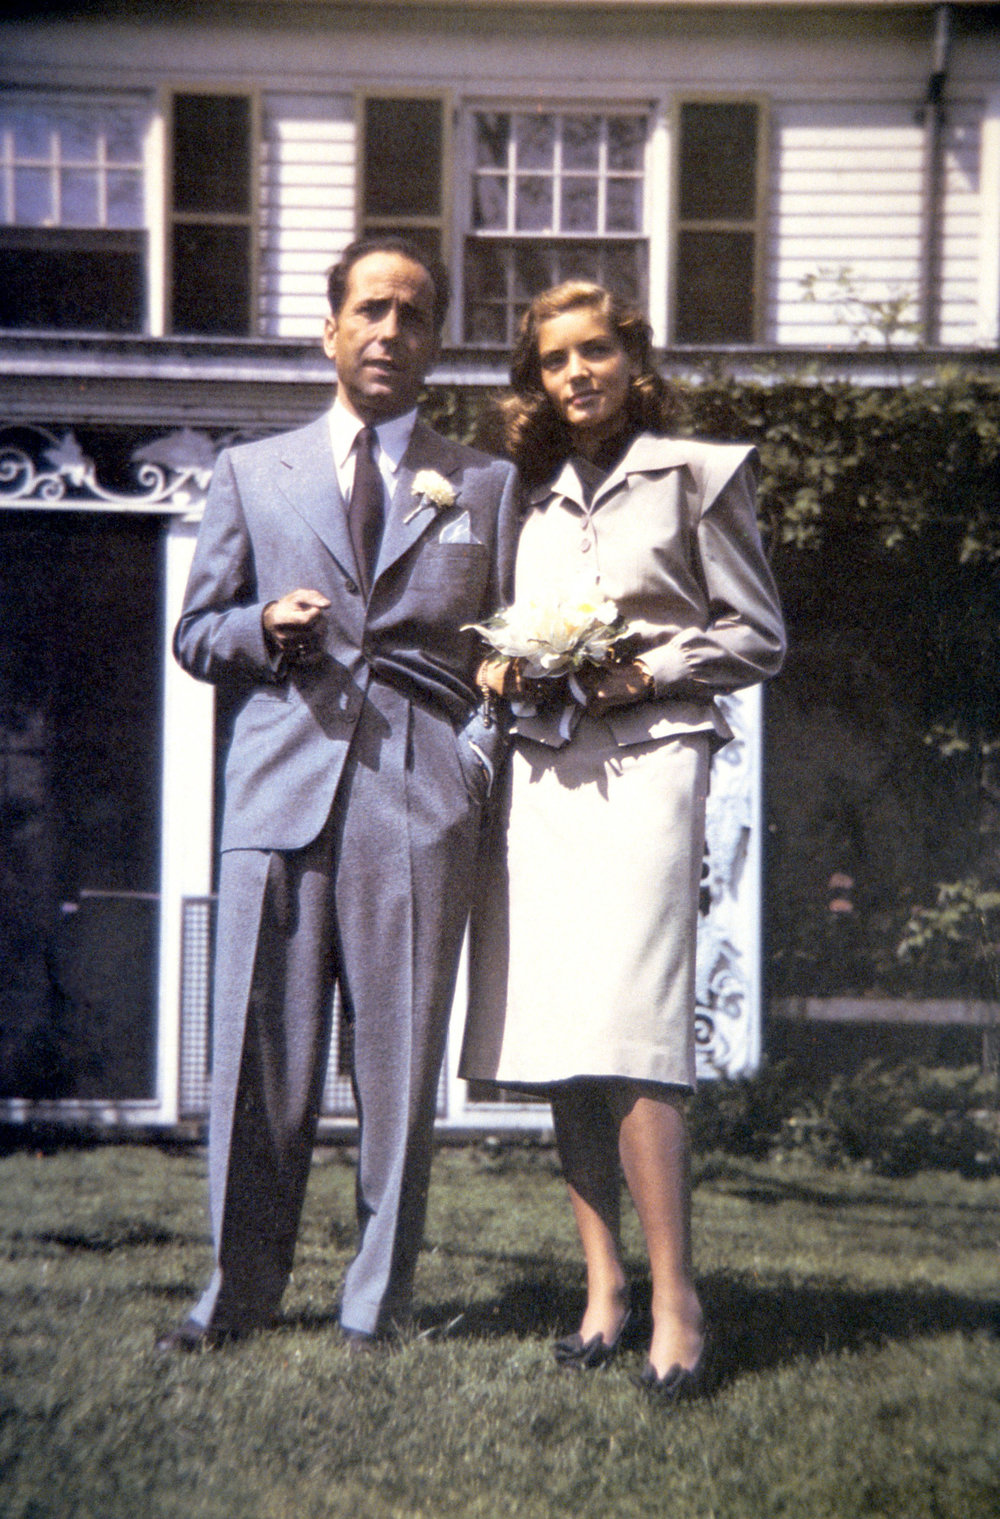 On their wedding day in 1945